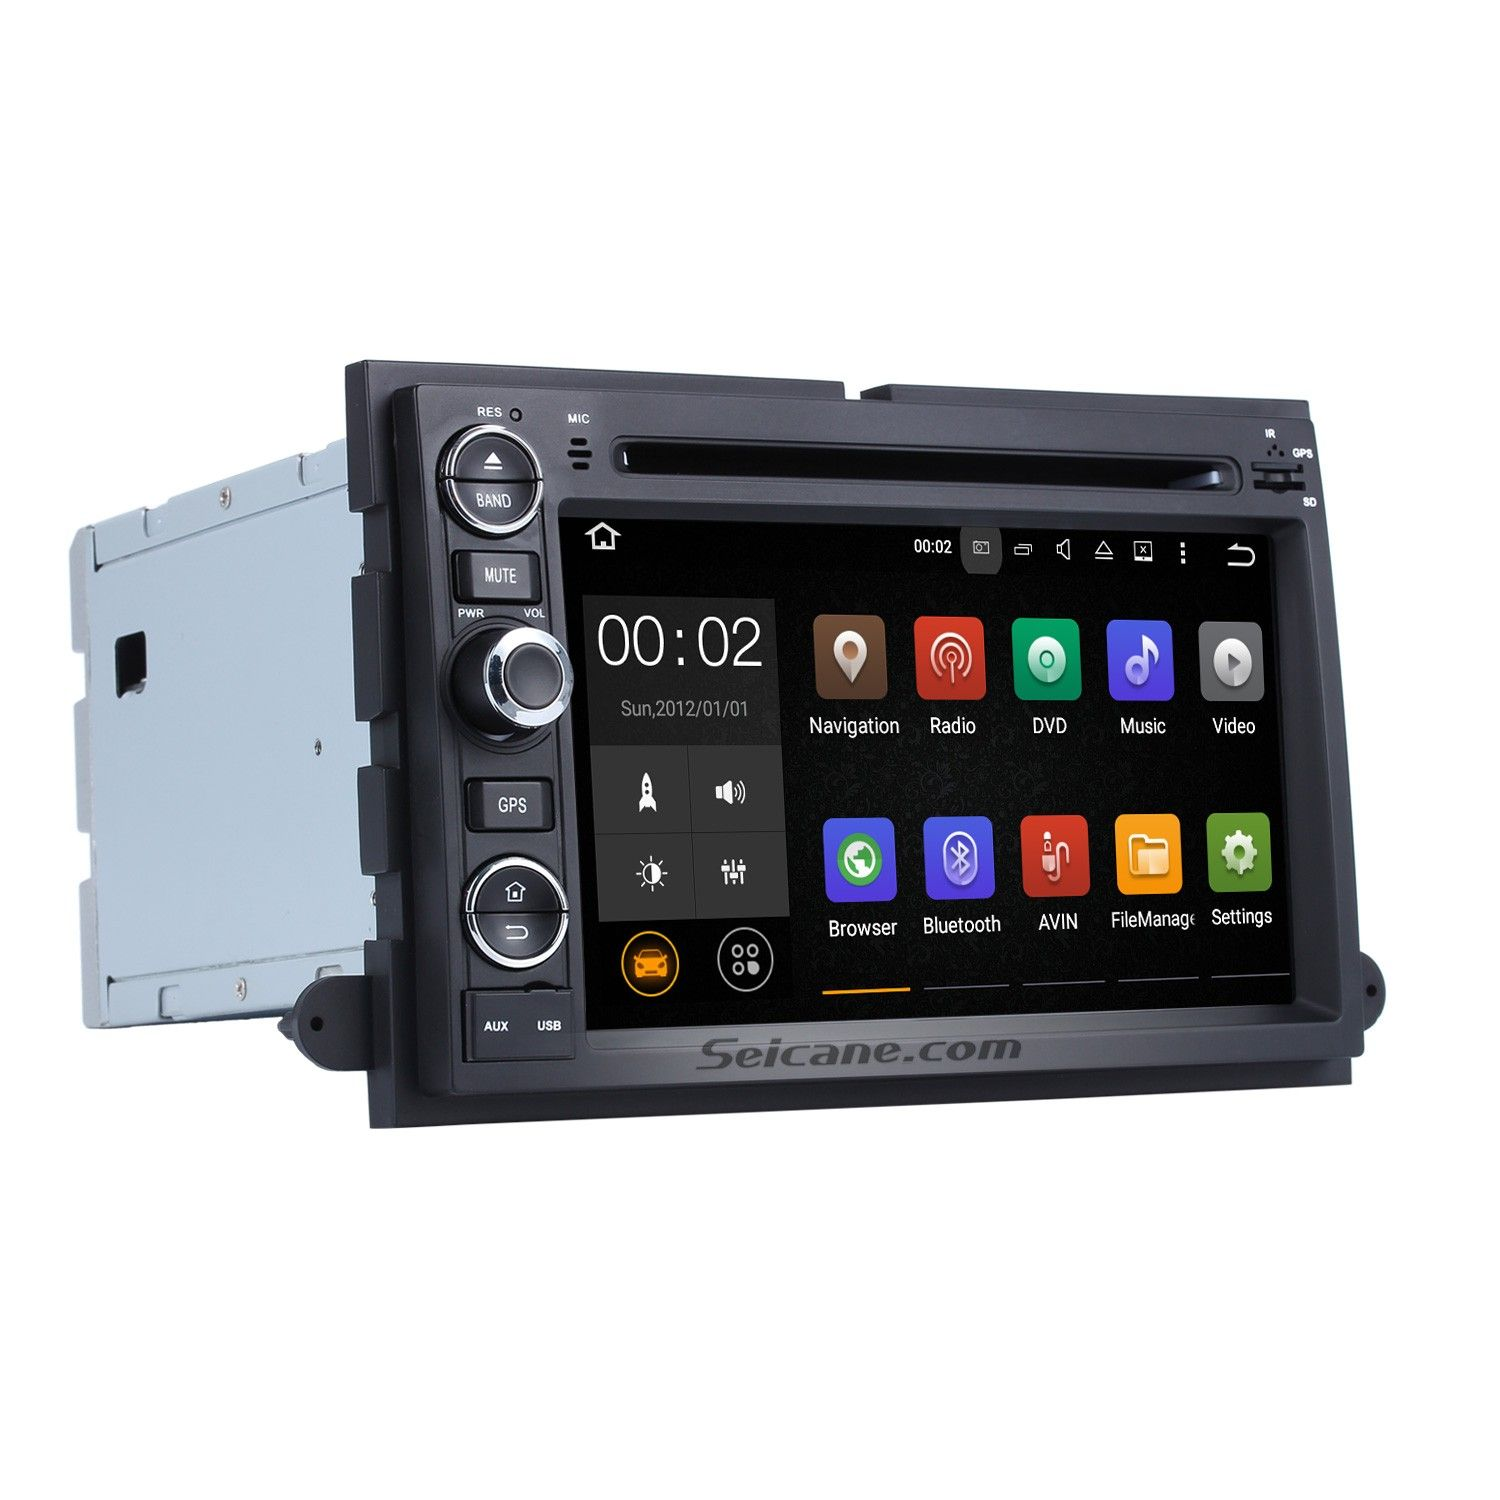 Seicane 2006 2009 Ford Expedition Android 7 1 Radio Gps Navigation System Dvd Player Hd 1024 600 Tou Gps Navigation Car Navigation System Gps Navigation System